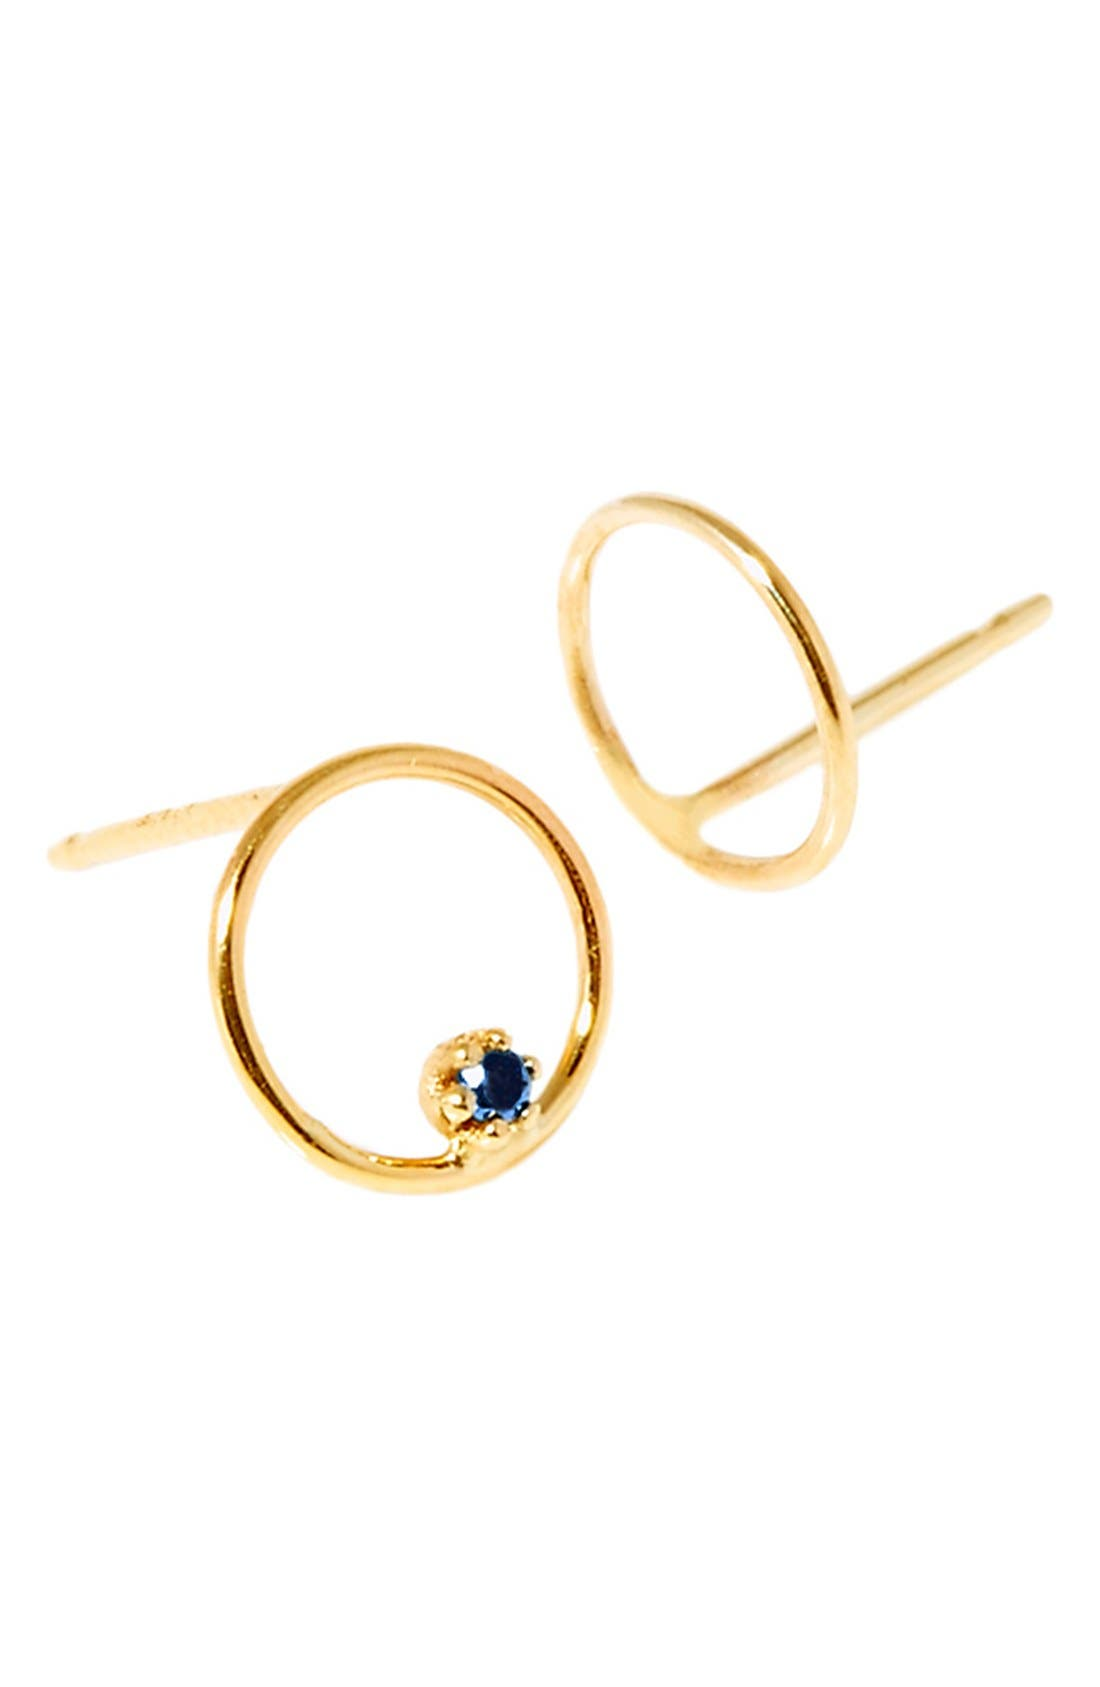 'Stone Bubble' Mismatched Gold & Sapphire Earrings,                         Main,                         color, Yellow Gold